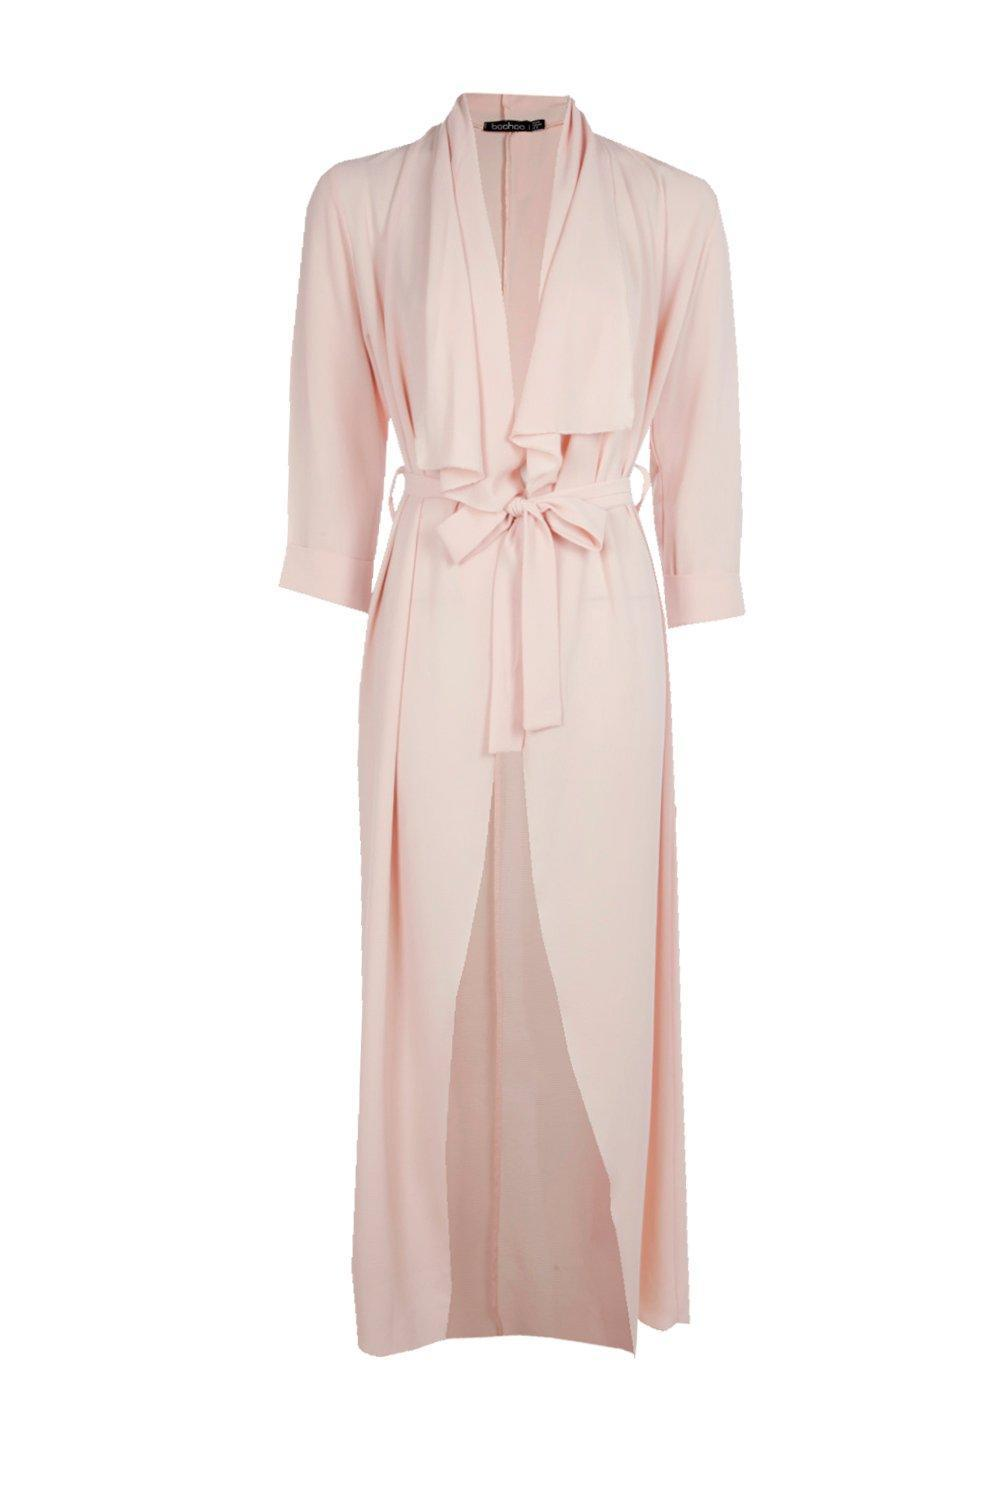 ccc7a7058c178 Boohoo Kaley Maxi Waterfall Duster in Pink - Lyst